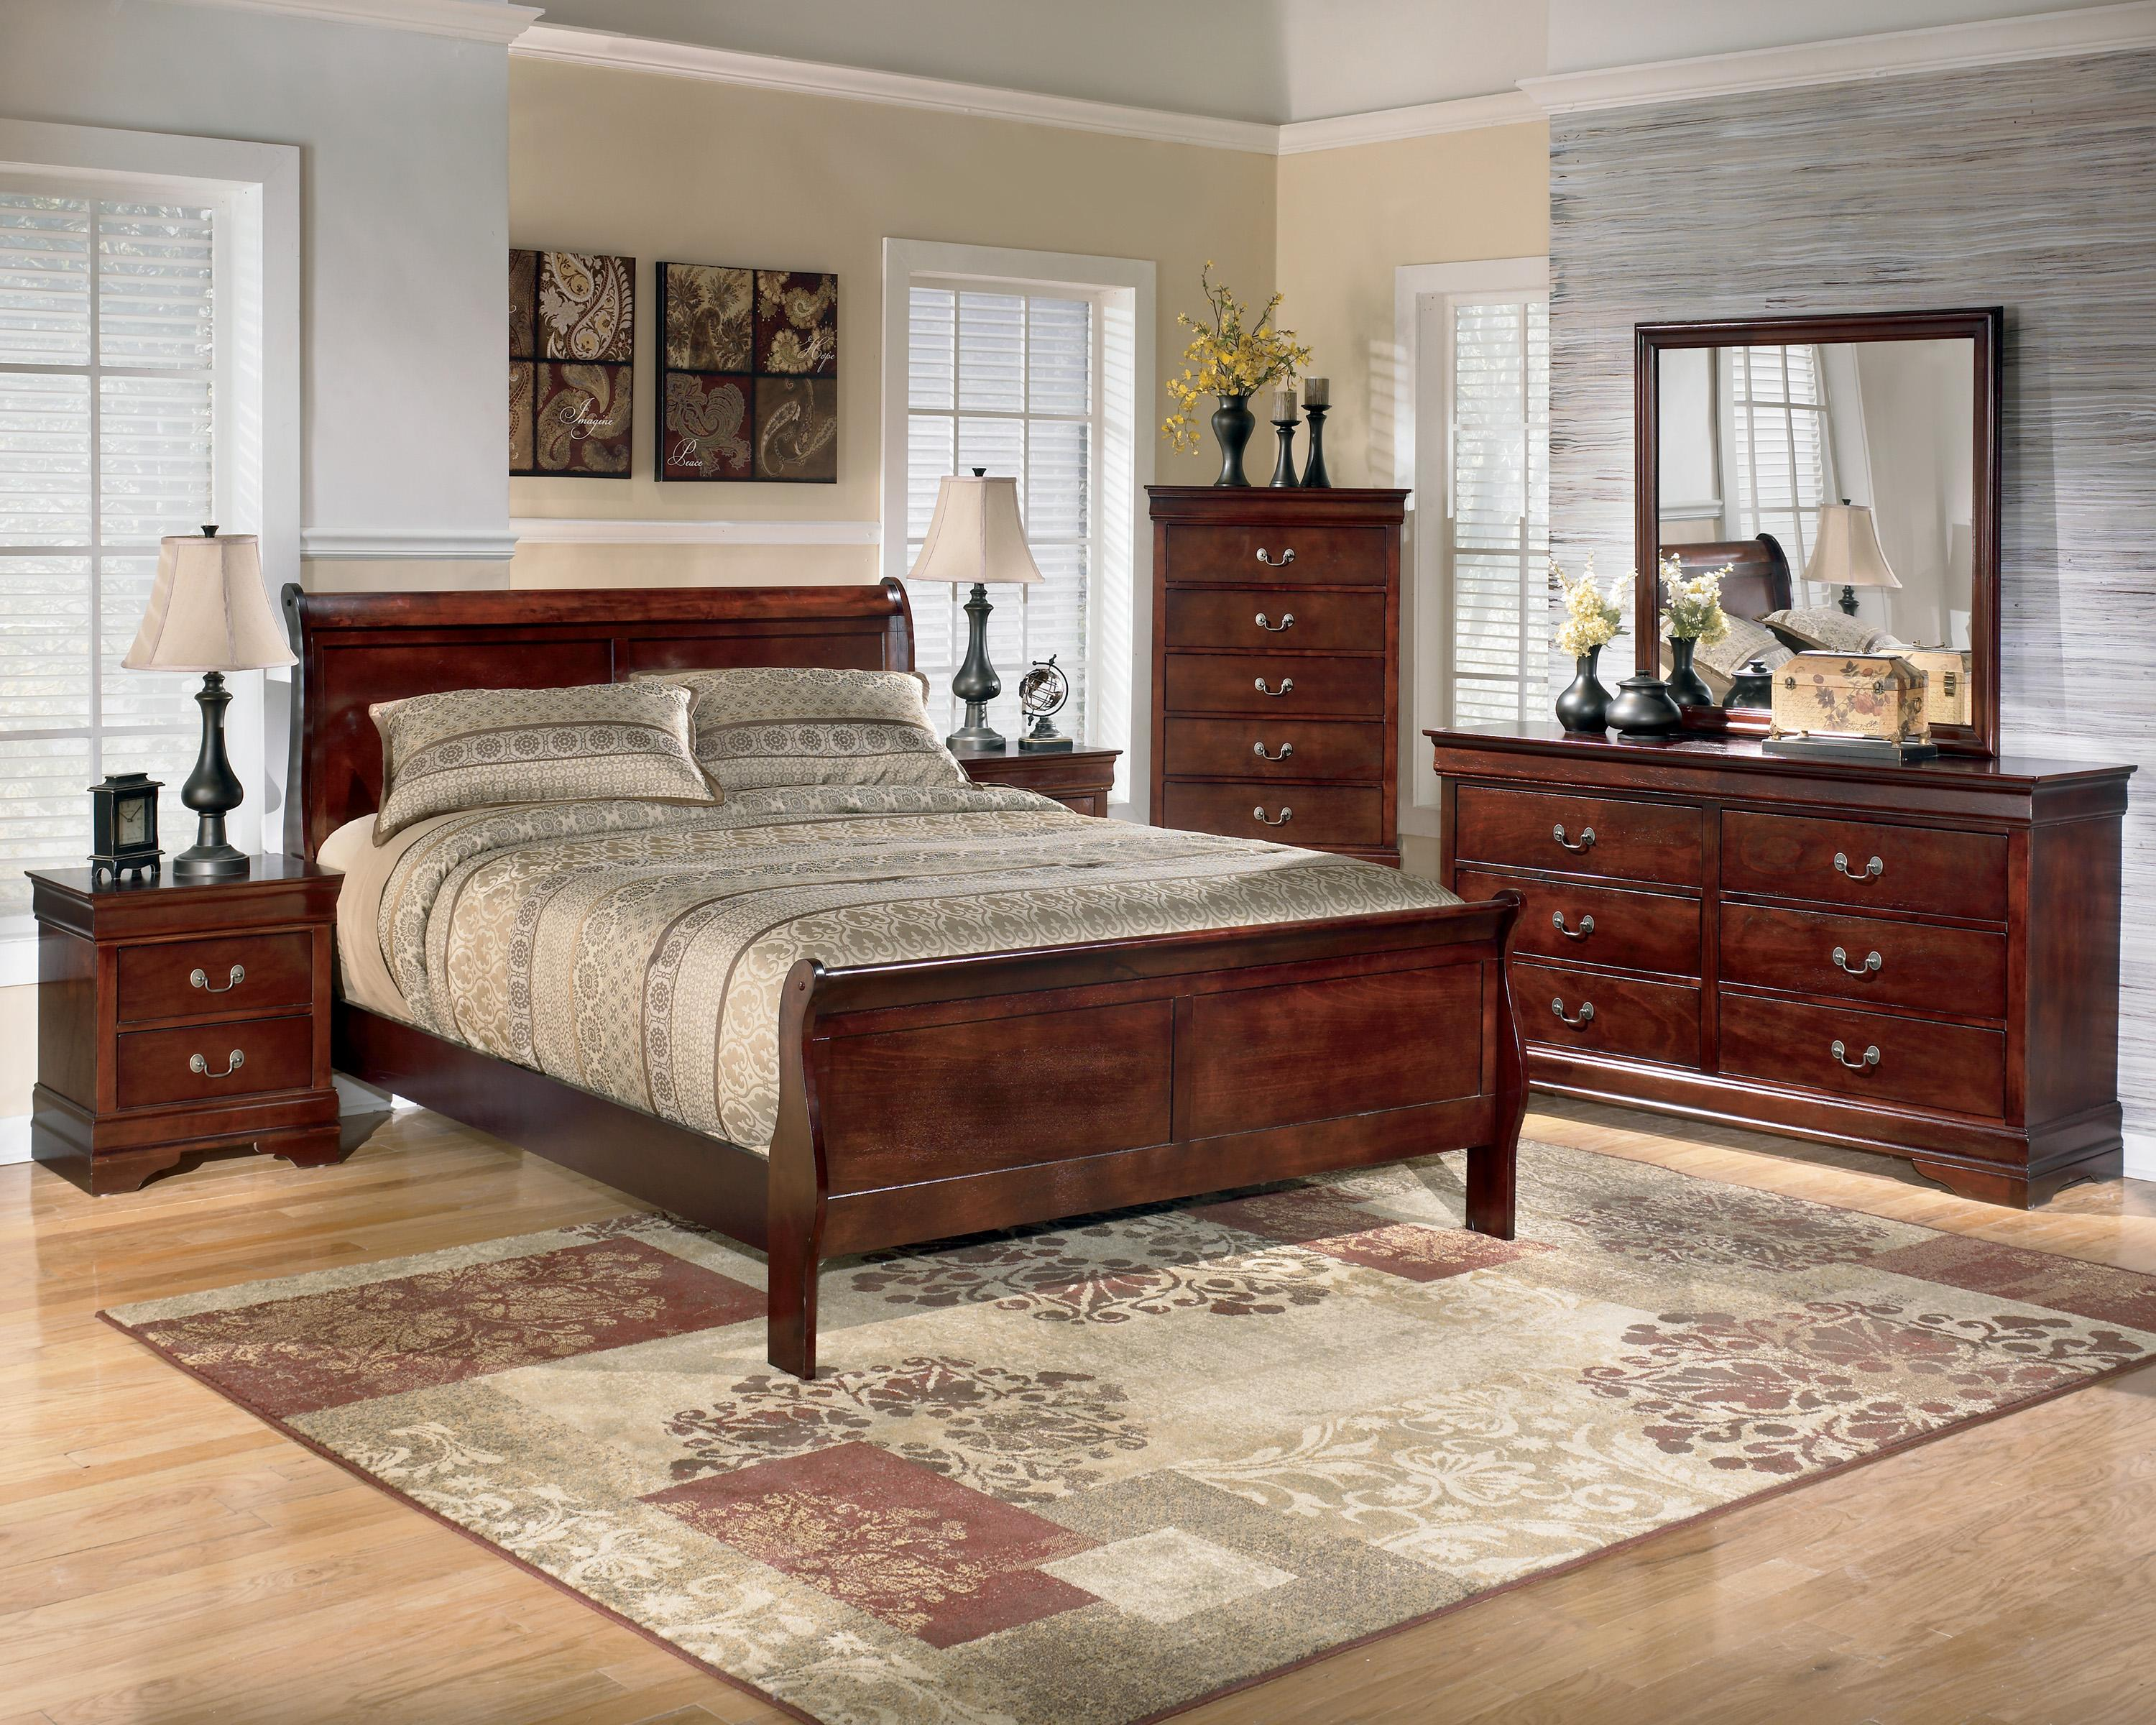 3 Piece California King Bedroom Group by Signature Design by Ashley : Wolf and Gardiner Wolf ...